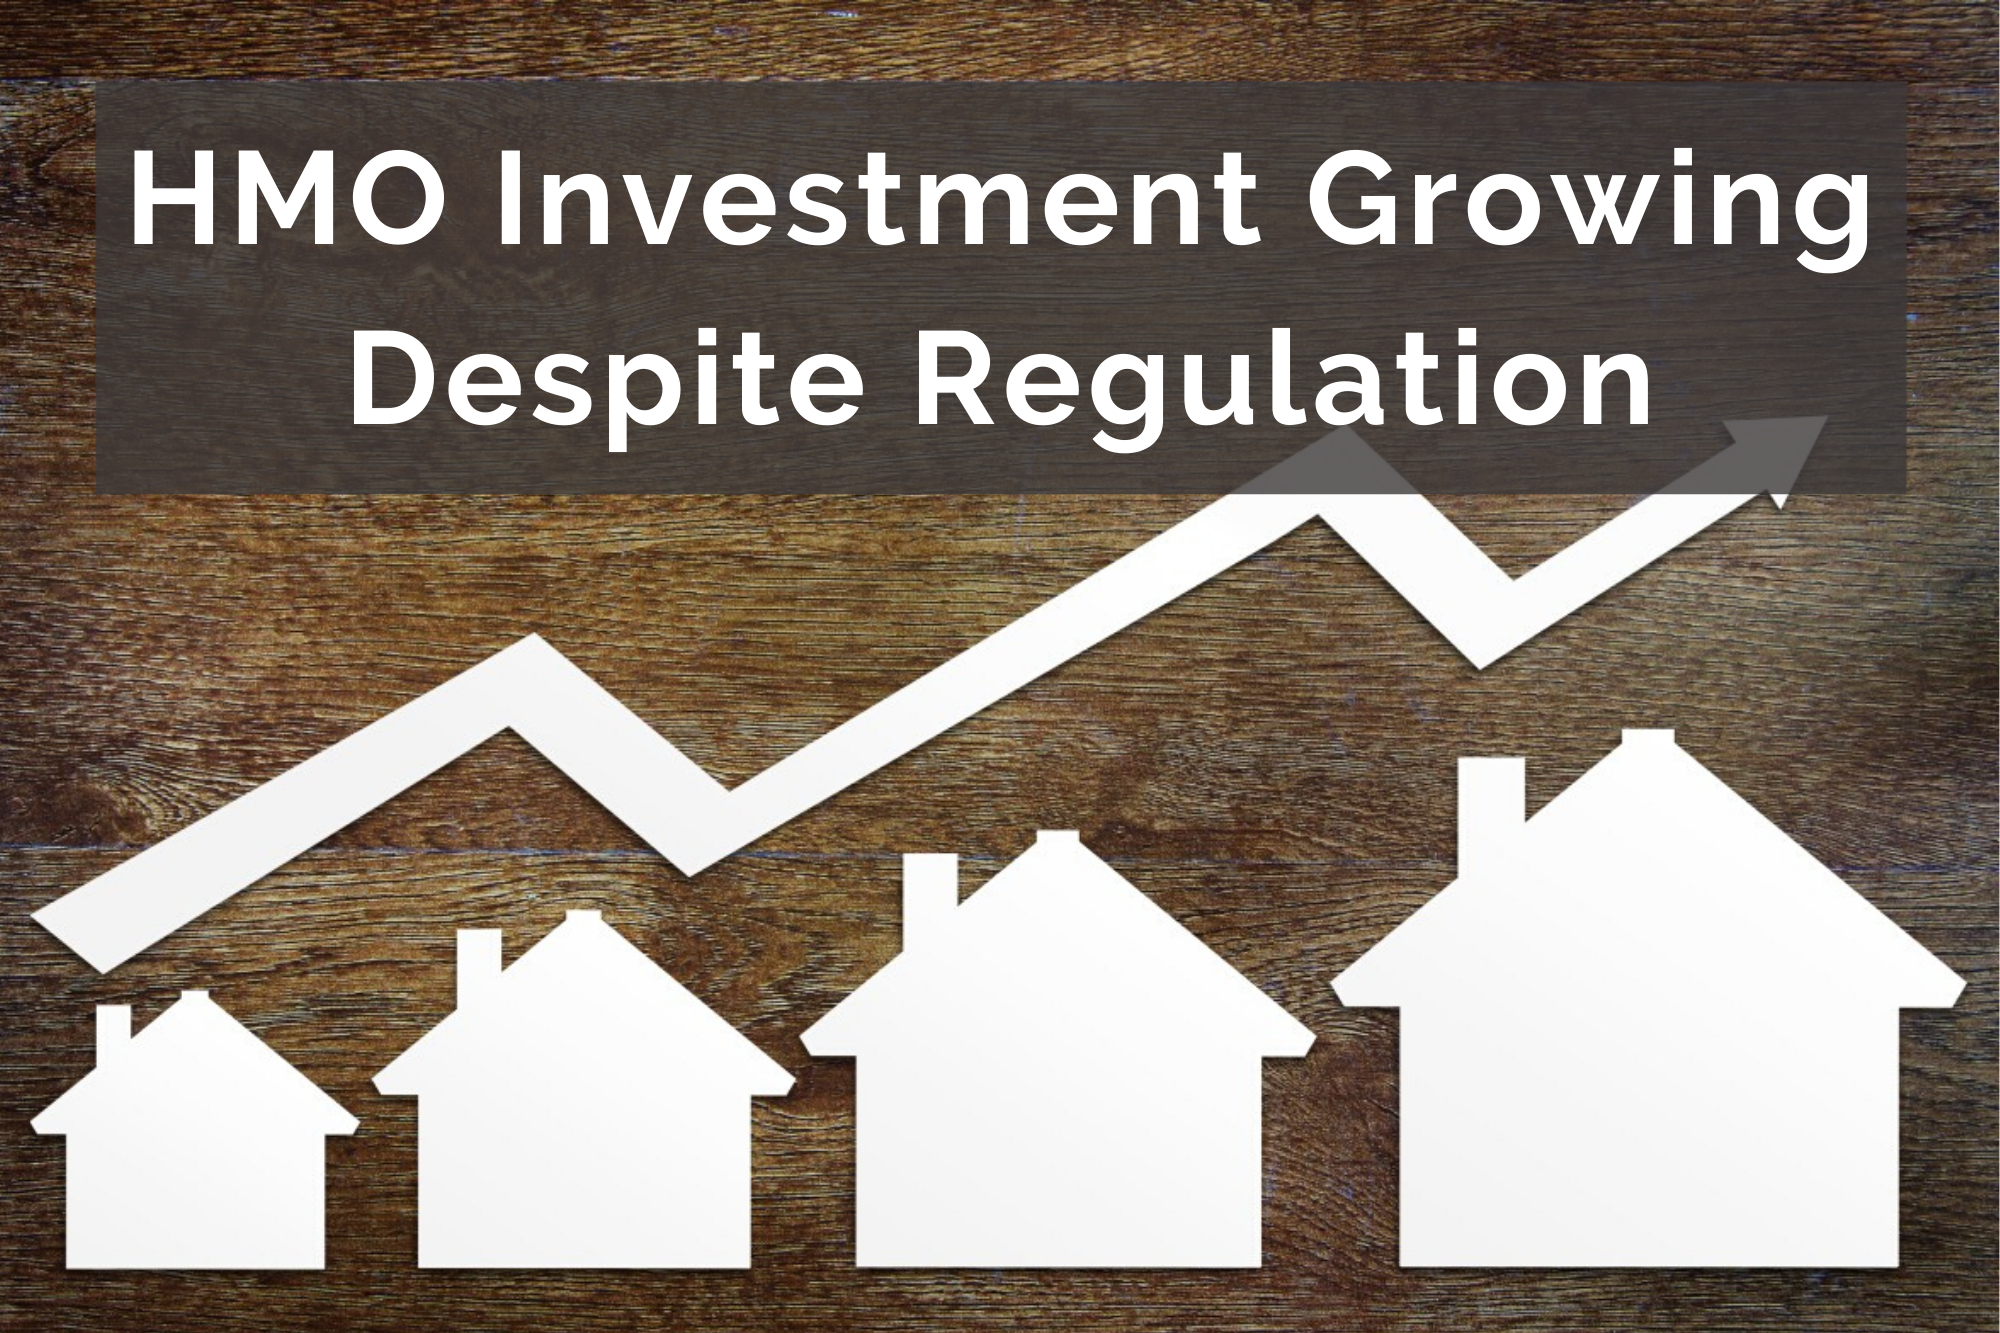 Numbers of HMO Investment Still Growing Despite Regulation